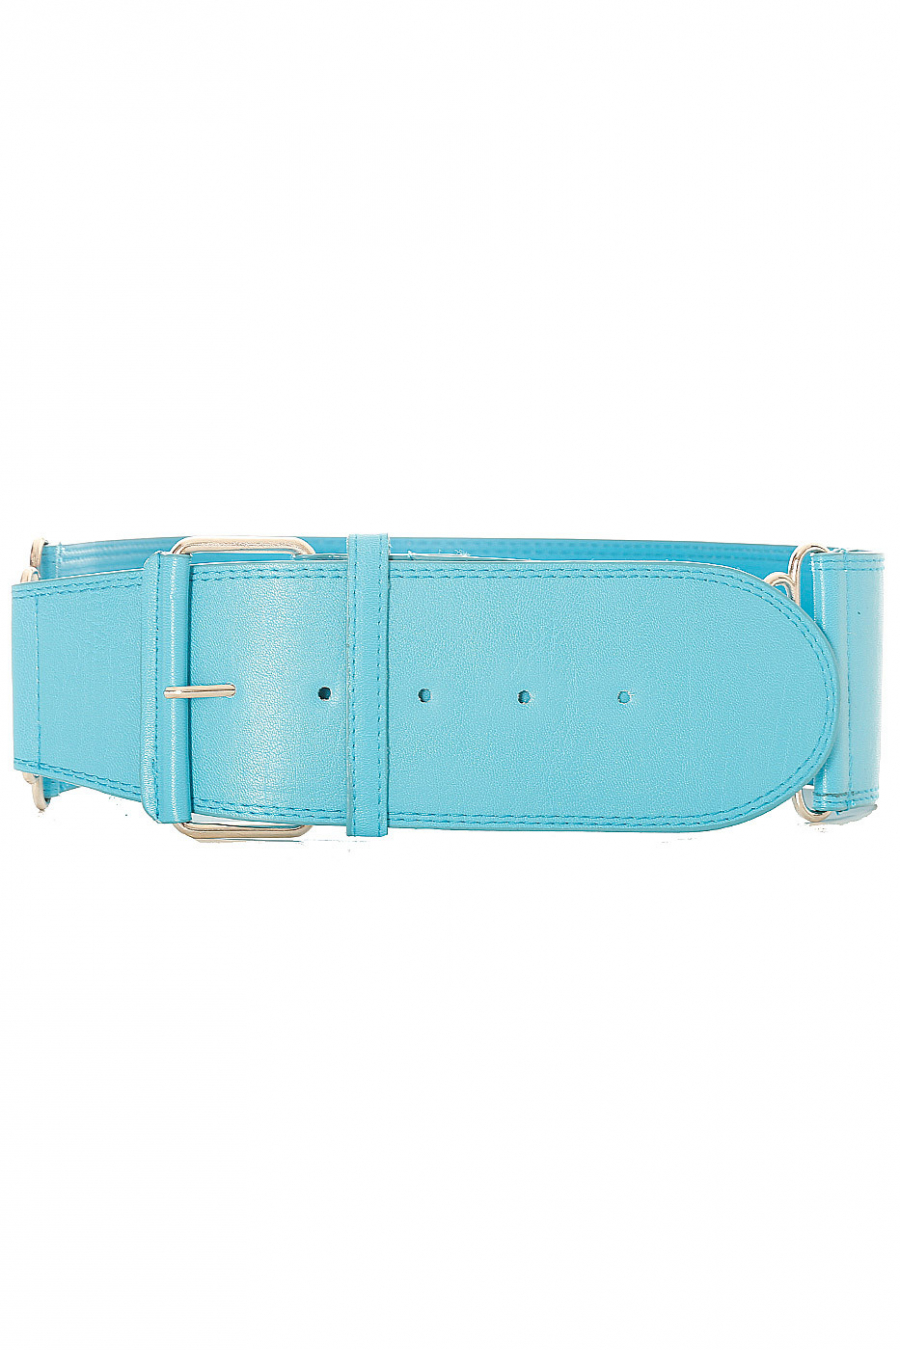 Grote trendy turquoise riem. SG-0418